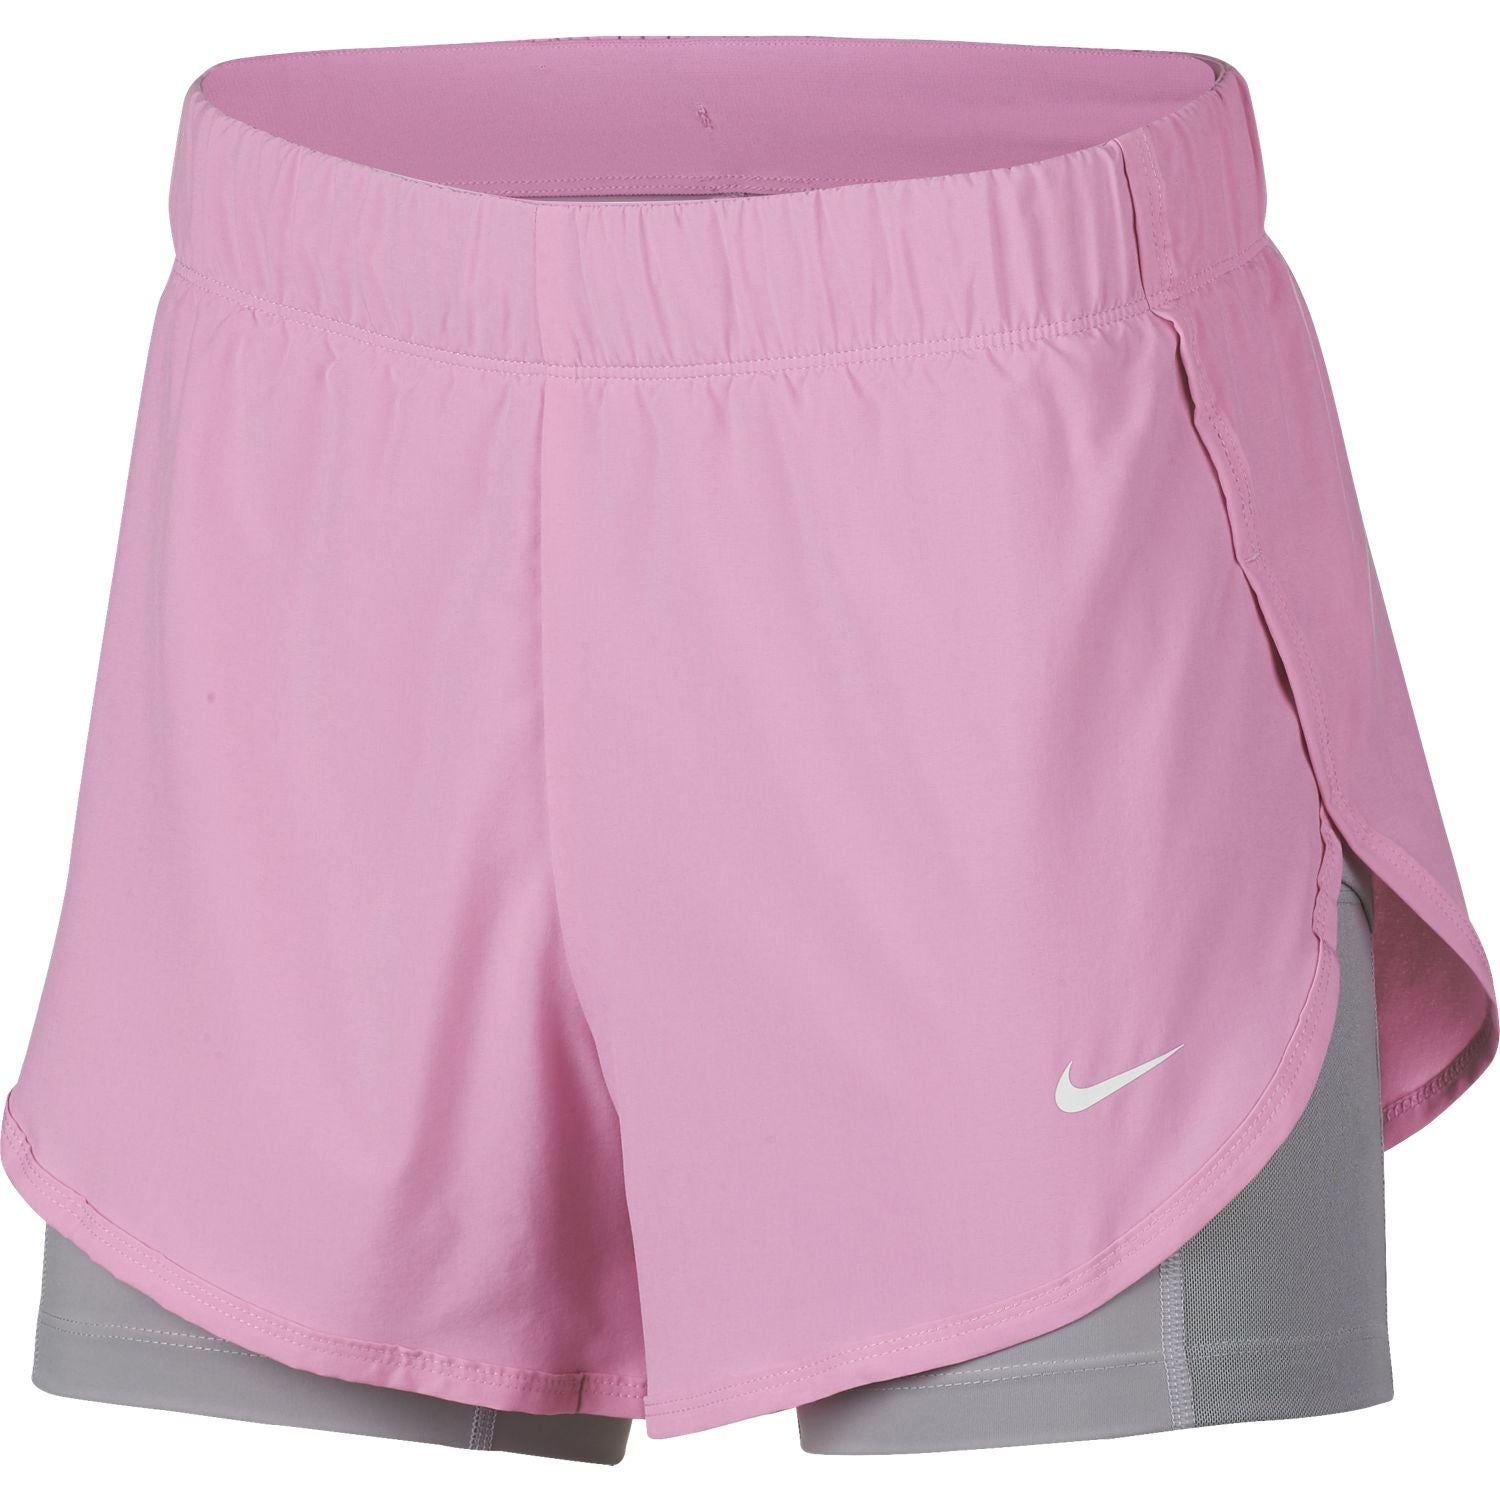 Women's Nike Flex Eclipse 2in1 shorts AR6353-629